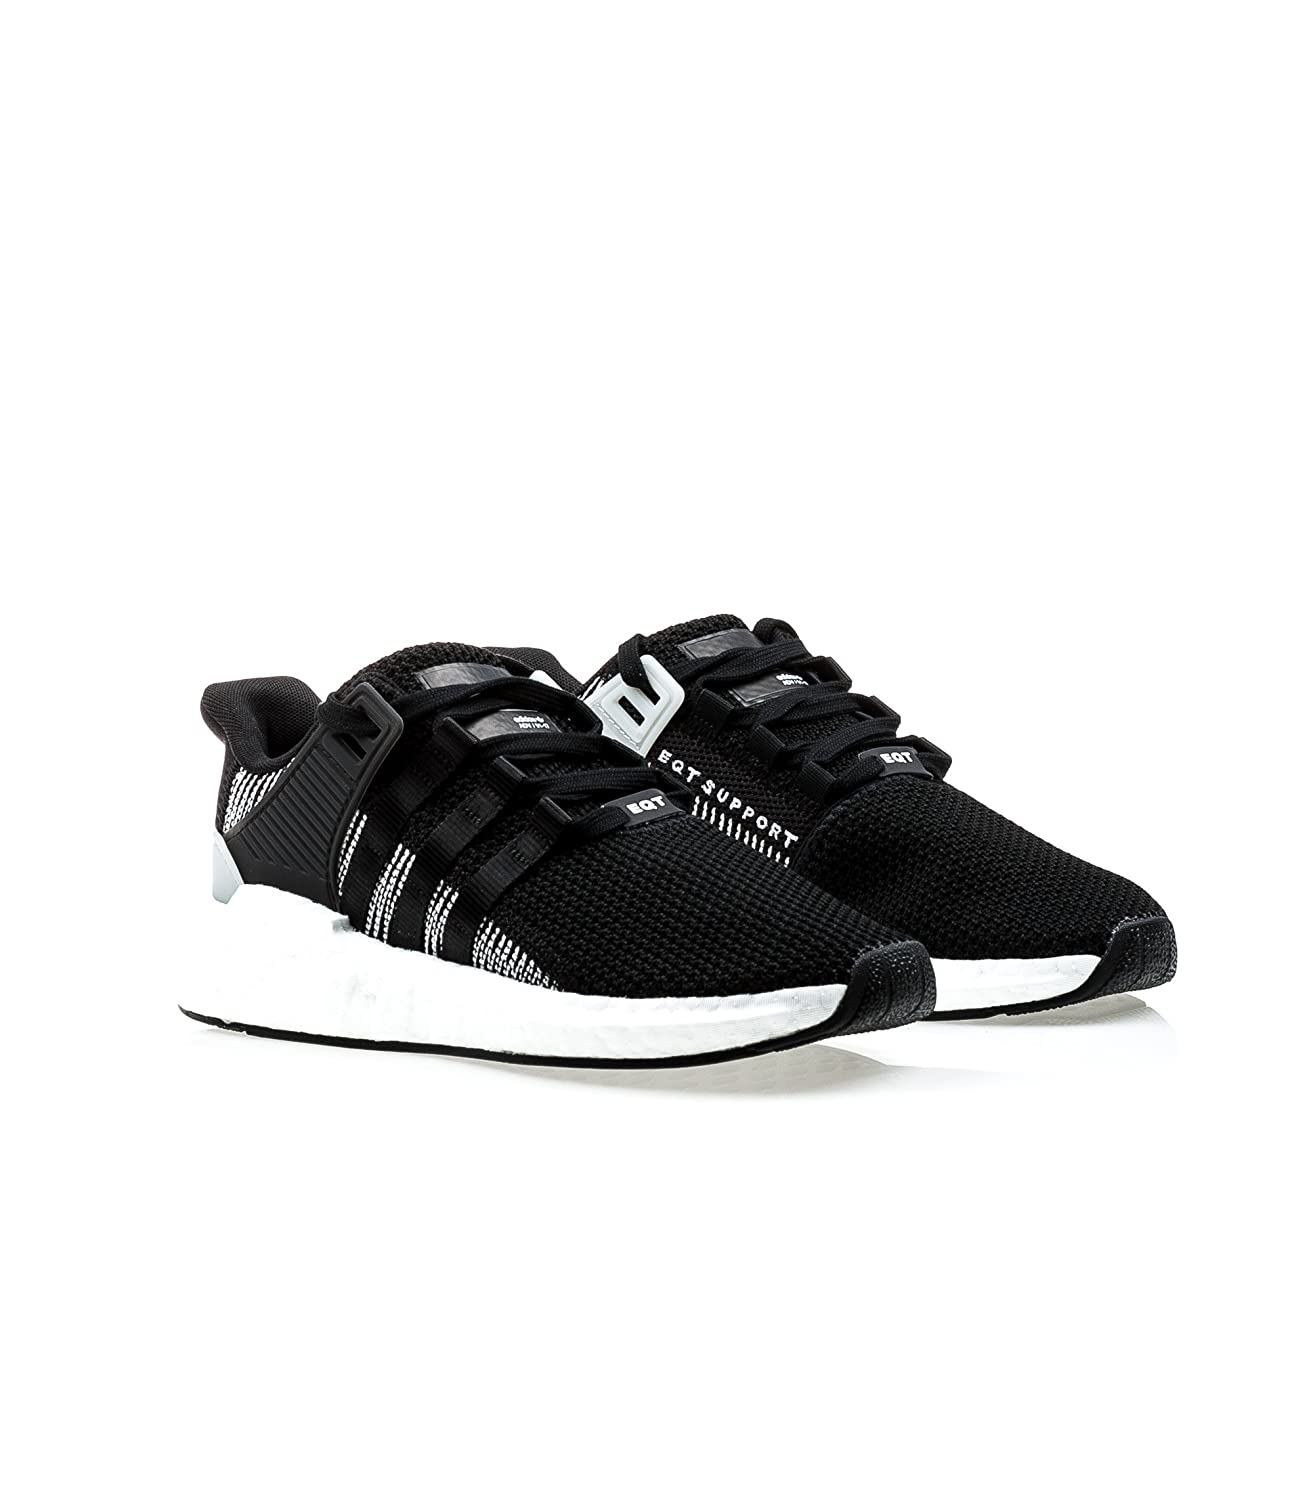 the best attitude 86d27 c4432 adidas EQT Support 9317, Sneaker Uomo Amazon.it Scarpe e bor